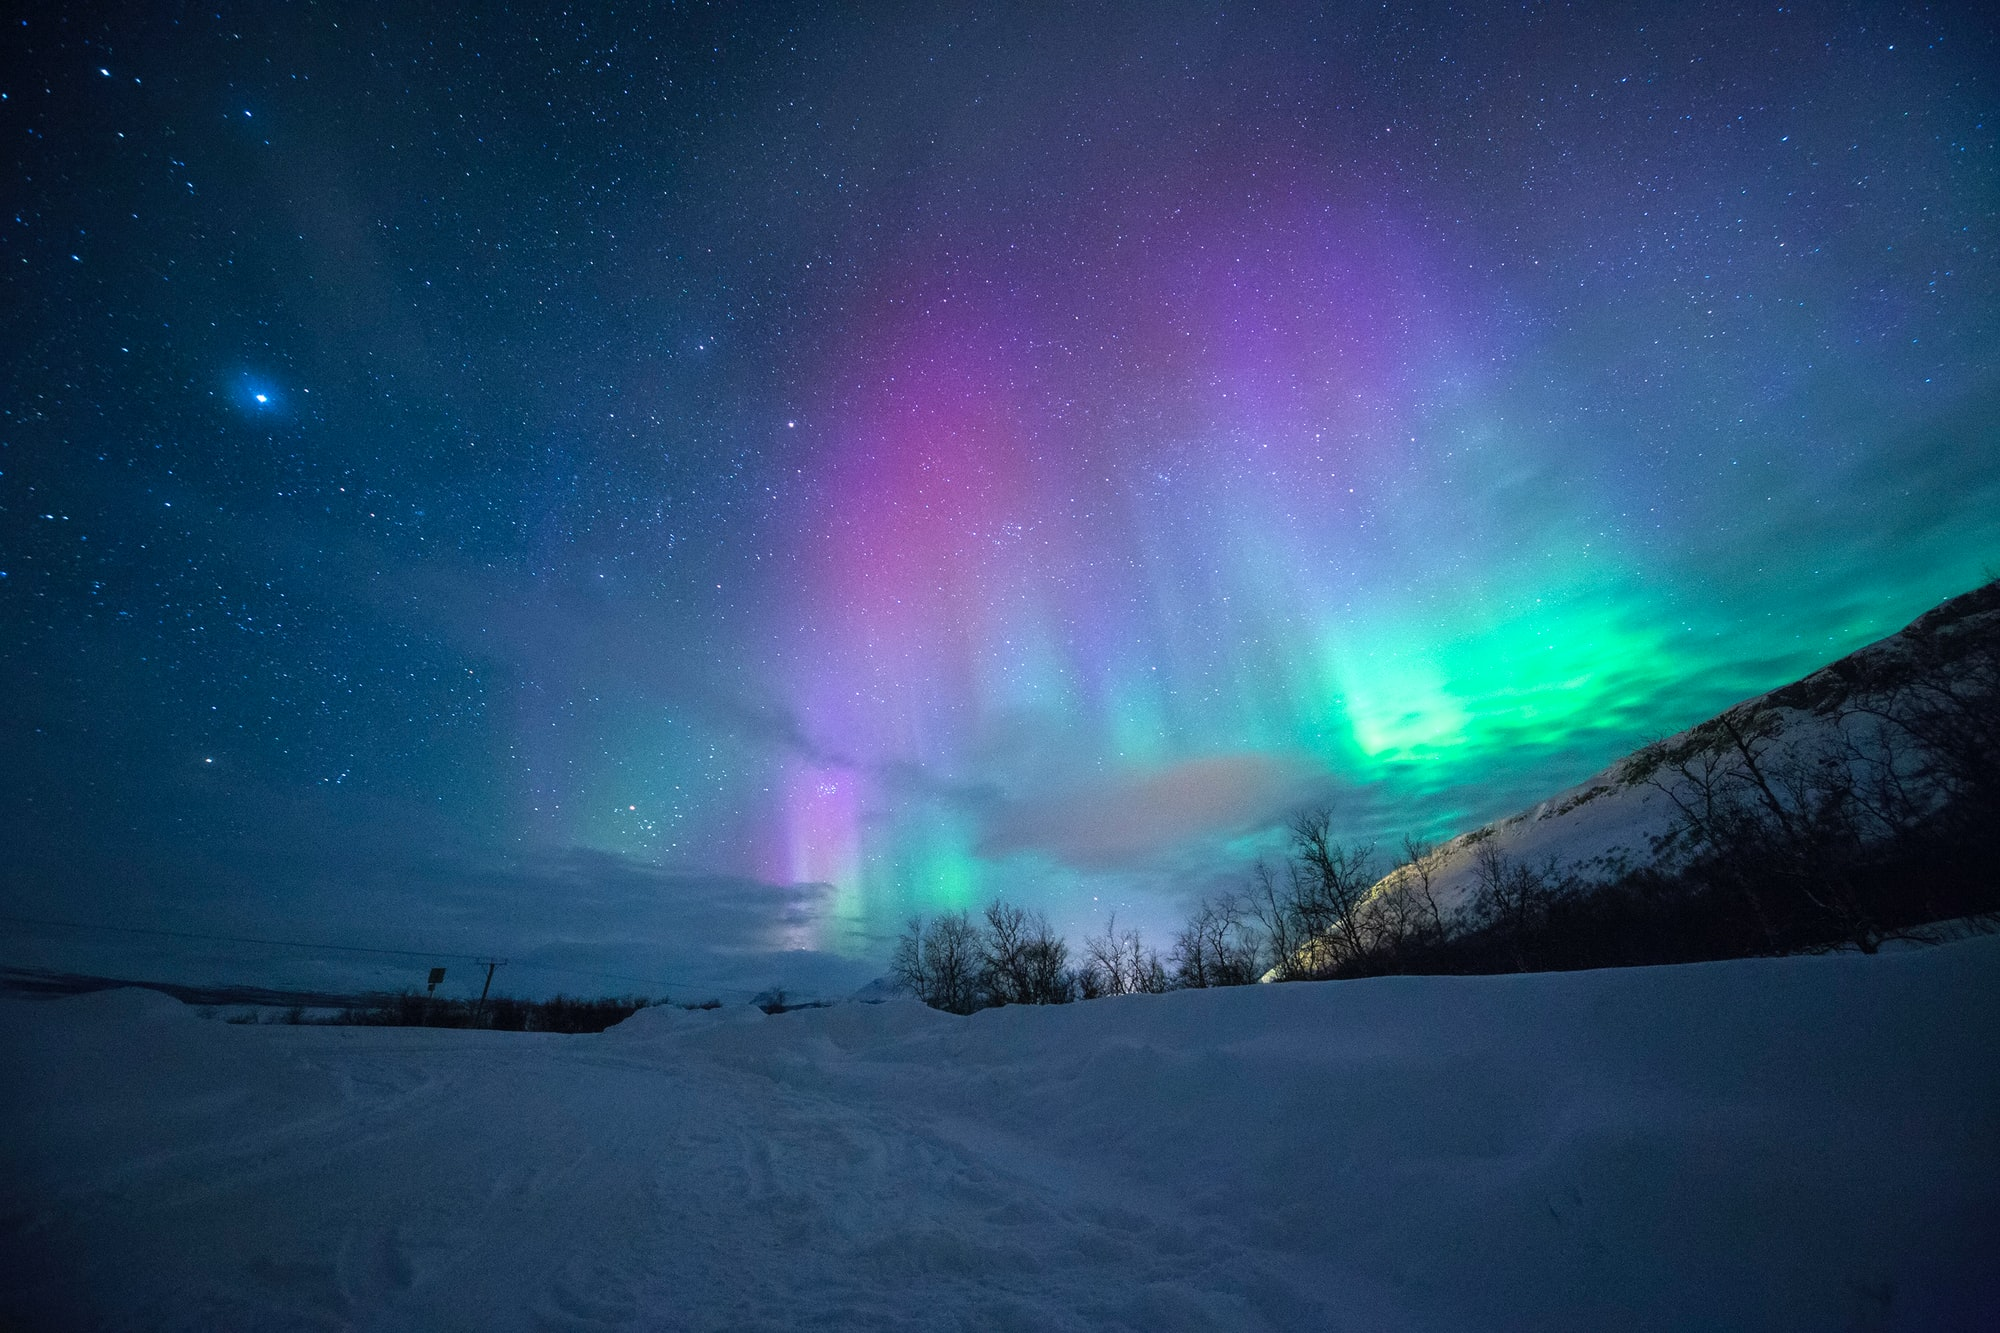 Amazing light display from Mother Nature, very humbled and in awe to capture a multi-hued color Aurora at Tromso, Norway.